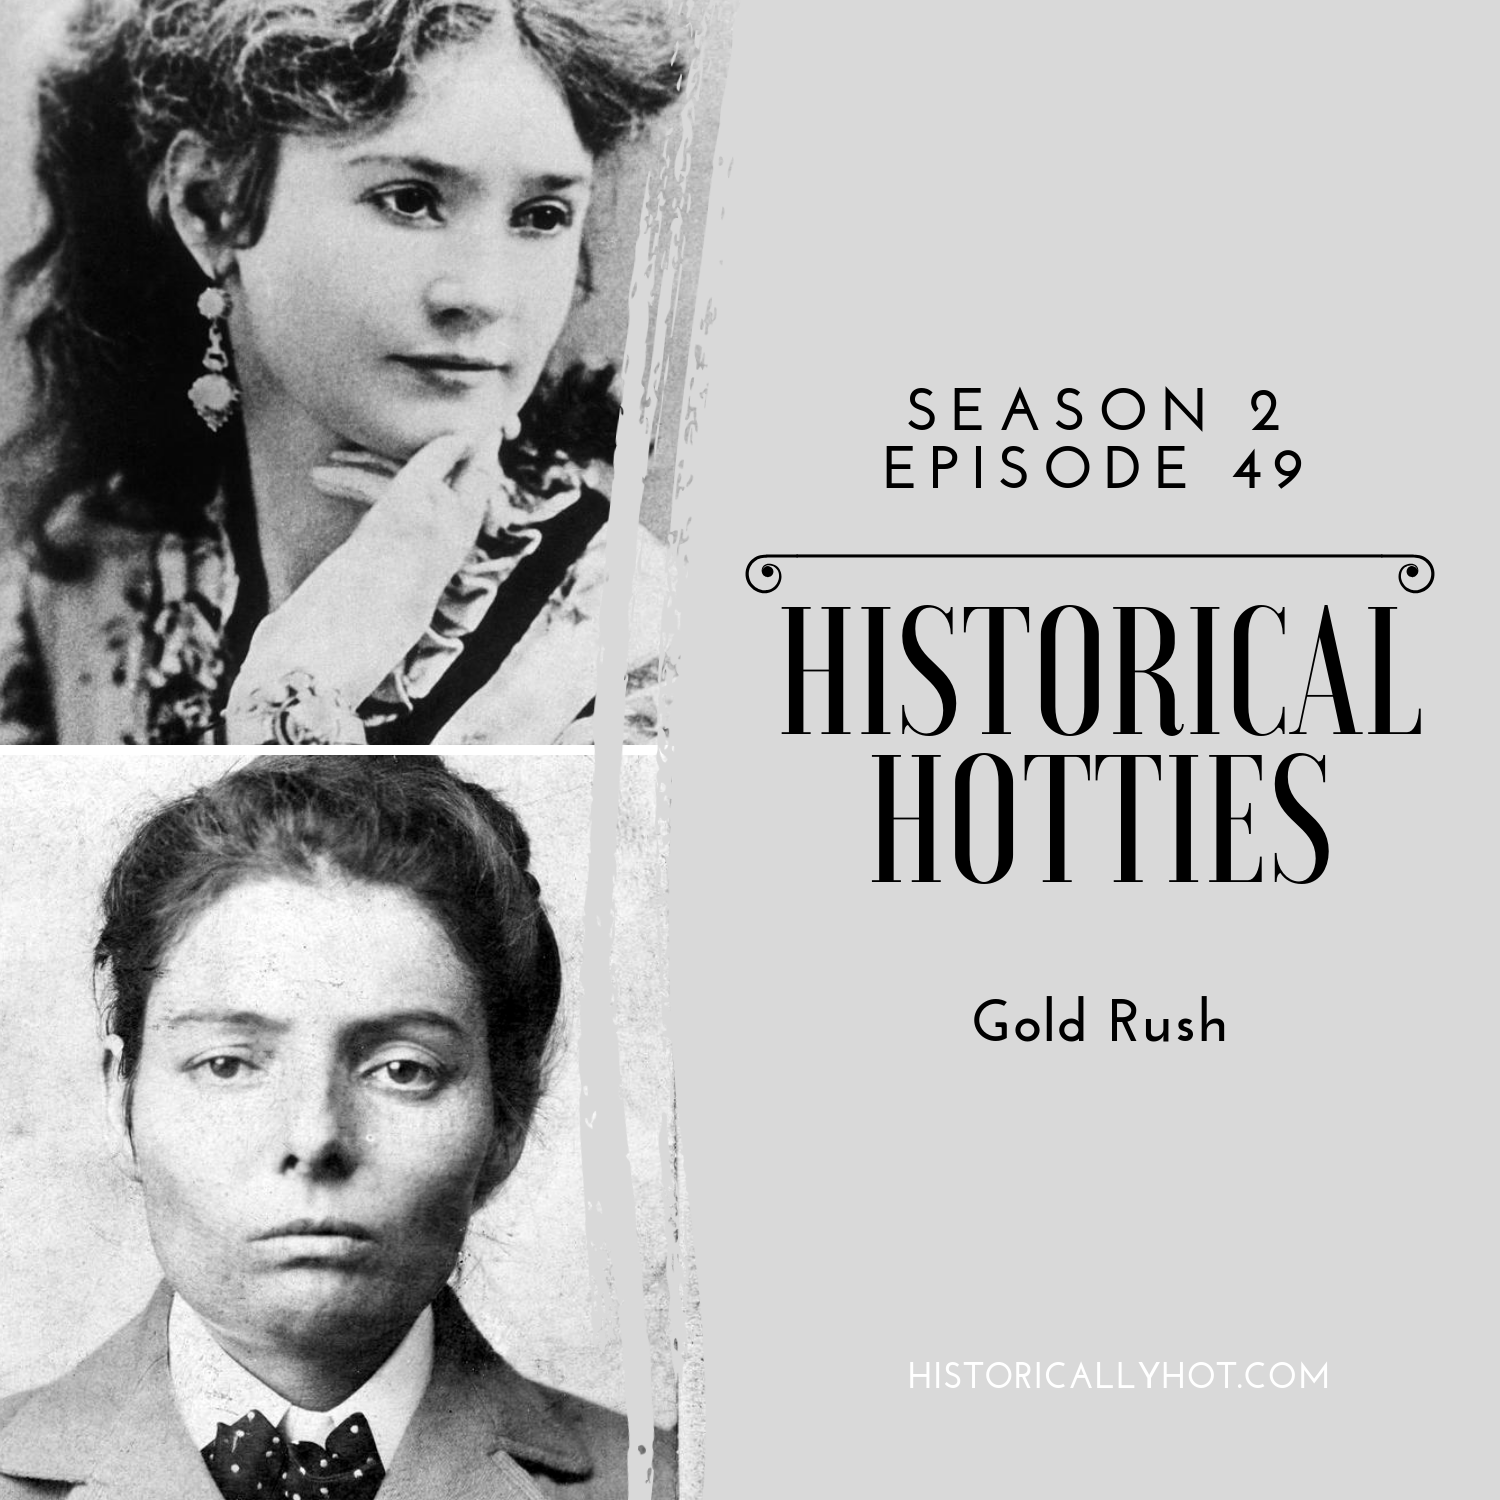 historical hotties gold rush